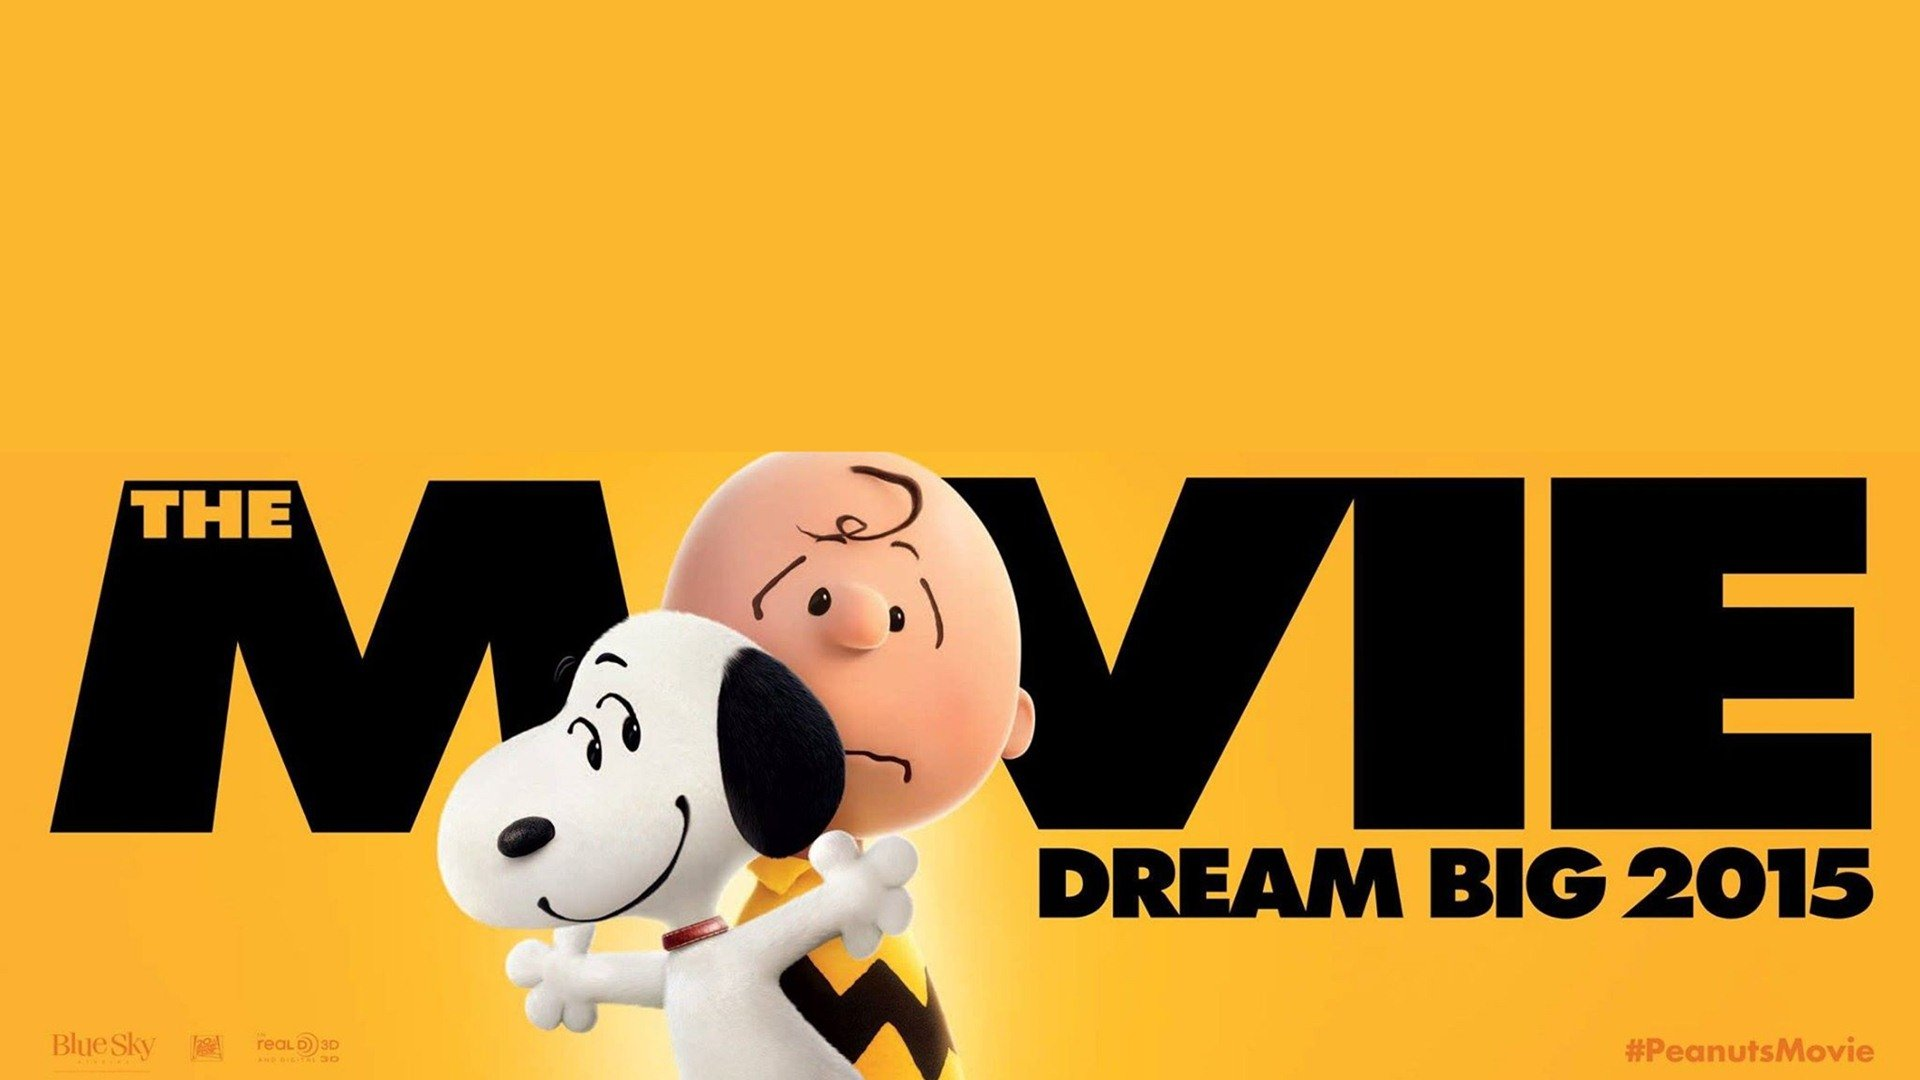 Charlie brown hd wallpaper impremedia download snoopy and charlie brown the peanuts 2015 movie wallpaper voltagebd Gallery